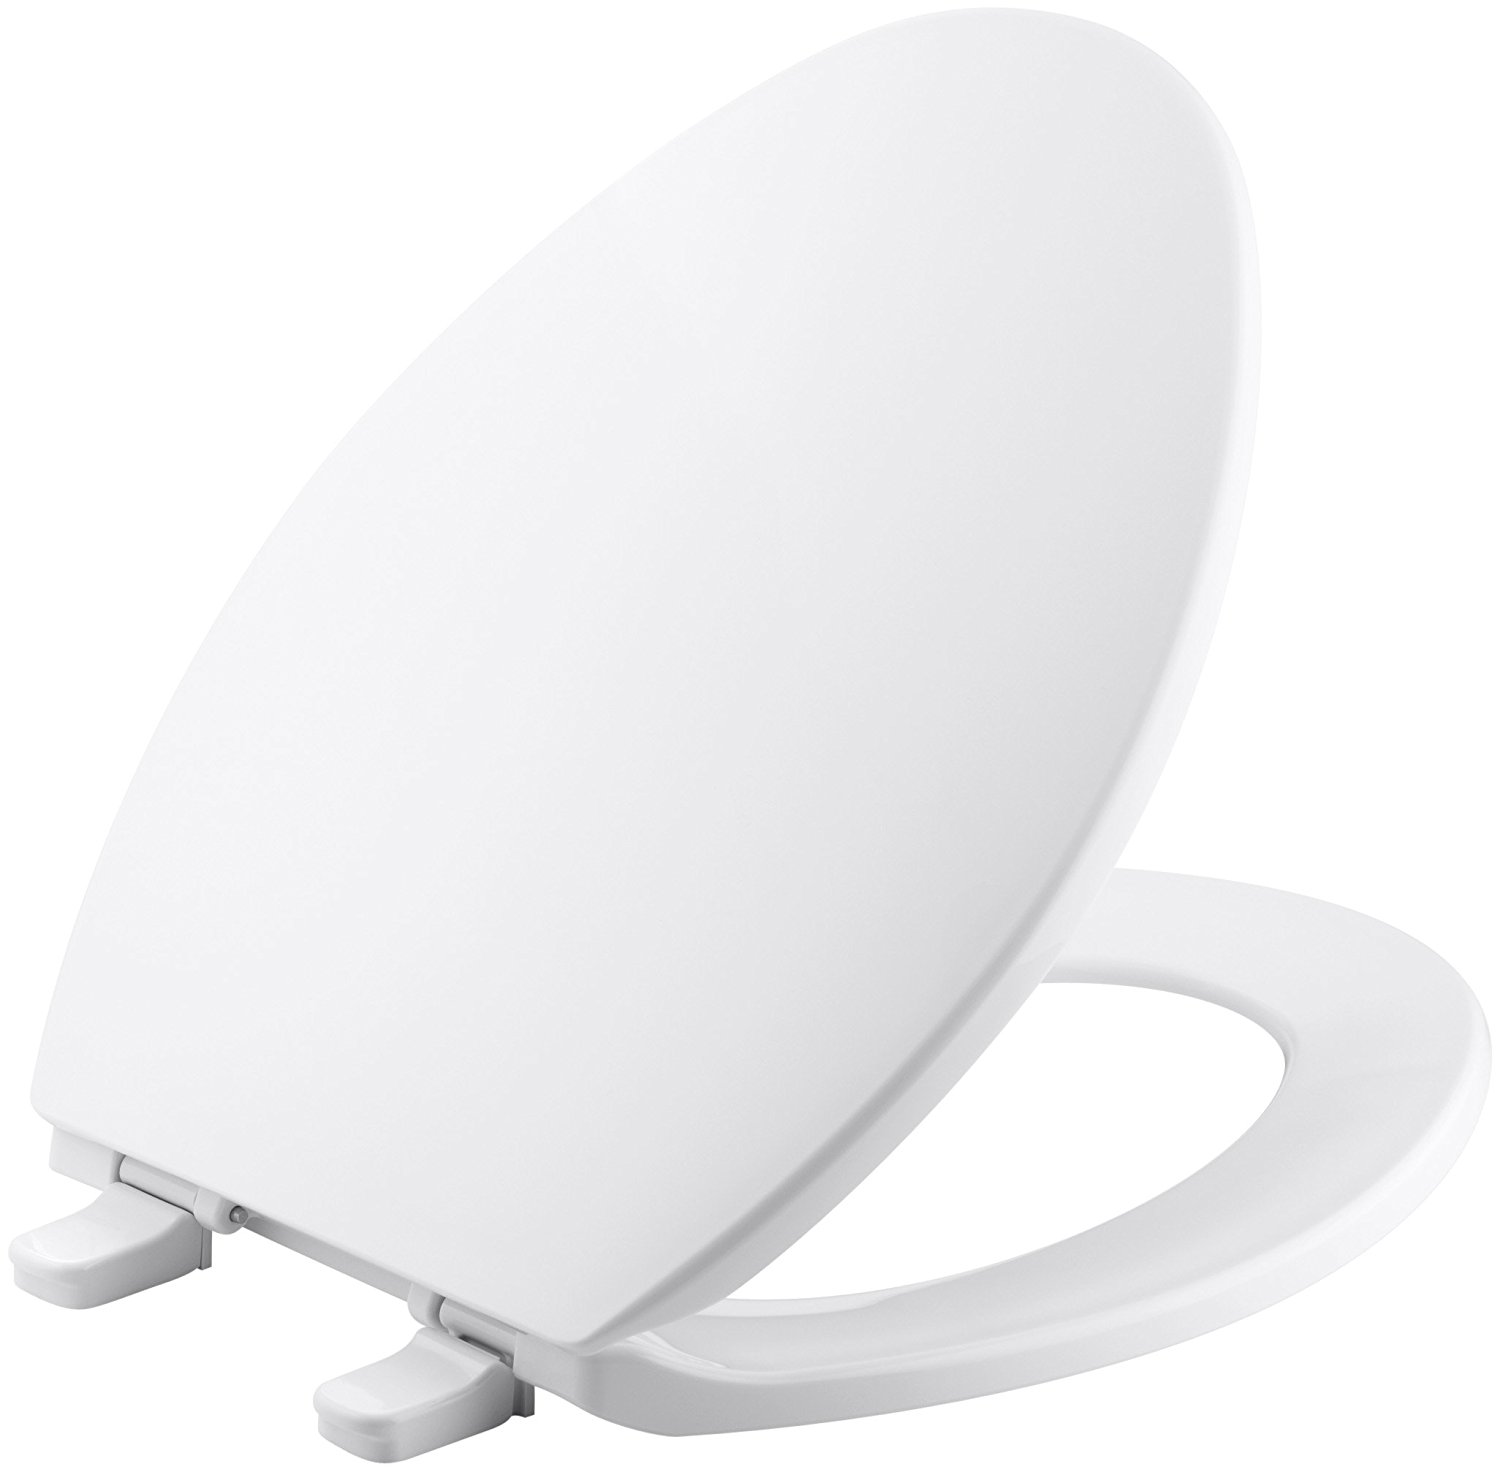 Kohler K-4774-0 Brevia with Quick-Release Hinges Elongated Toilet Seat, White